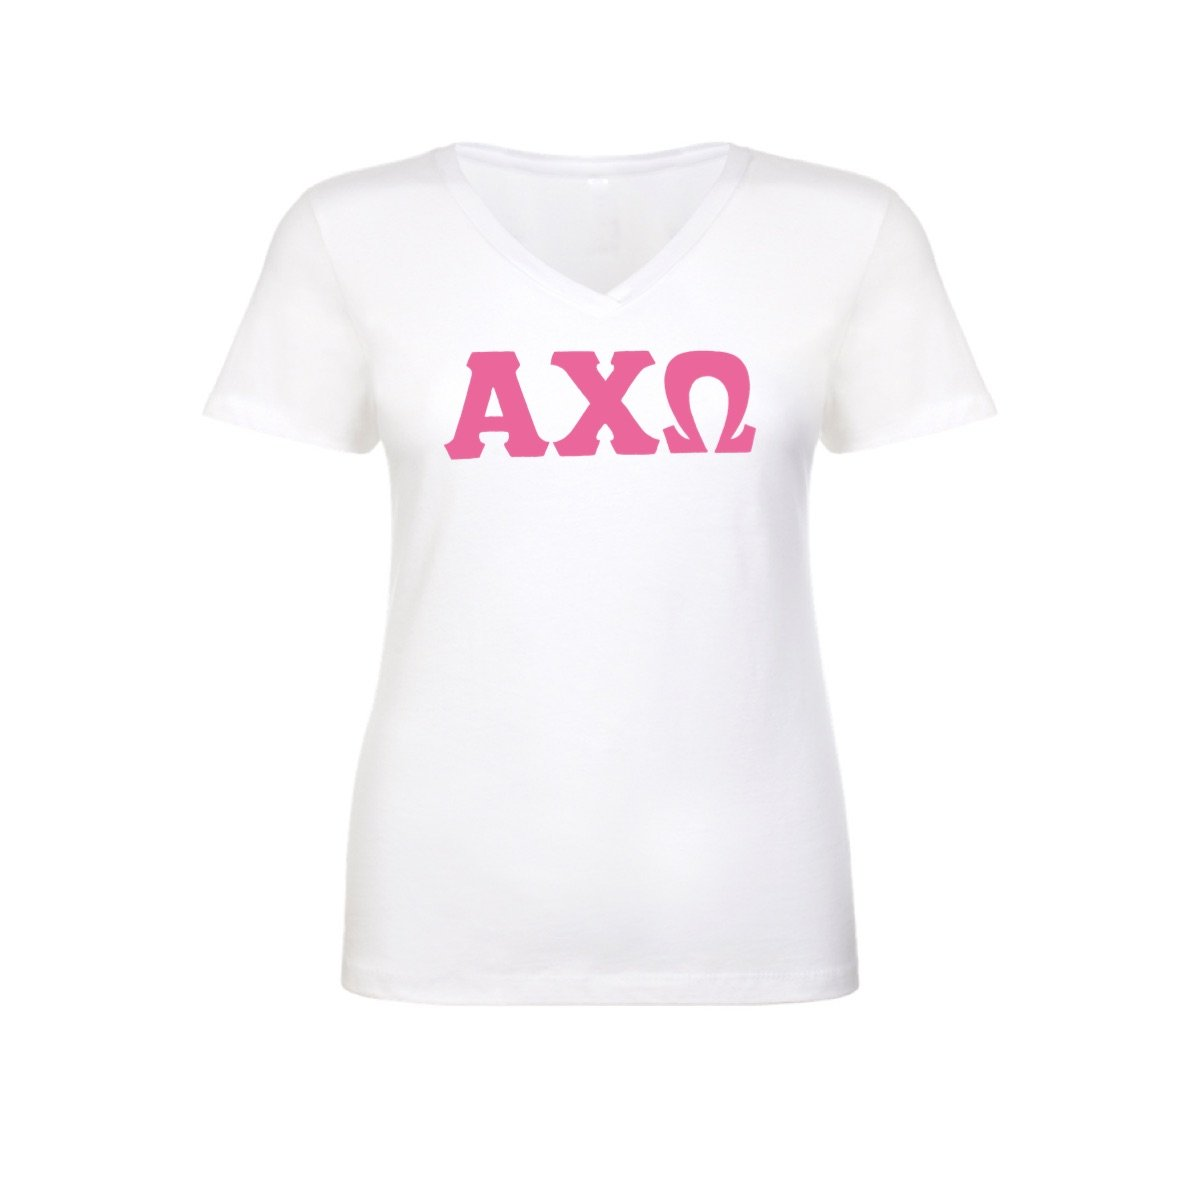 White Alpha Chi Omega Greek Lettered V-neck T-shirt with Pink Stitched Greek Letters